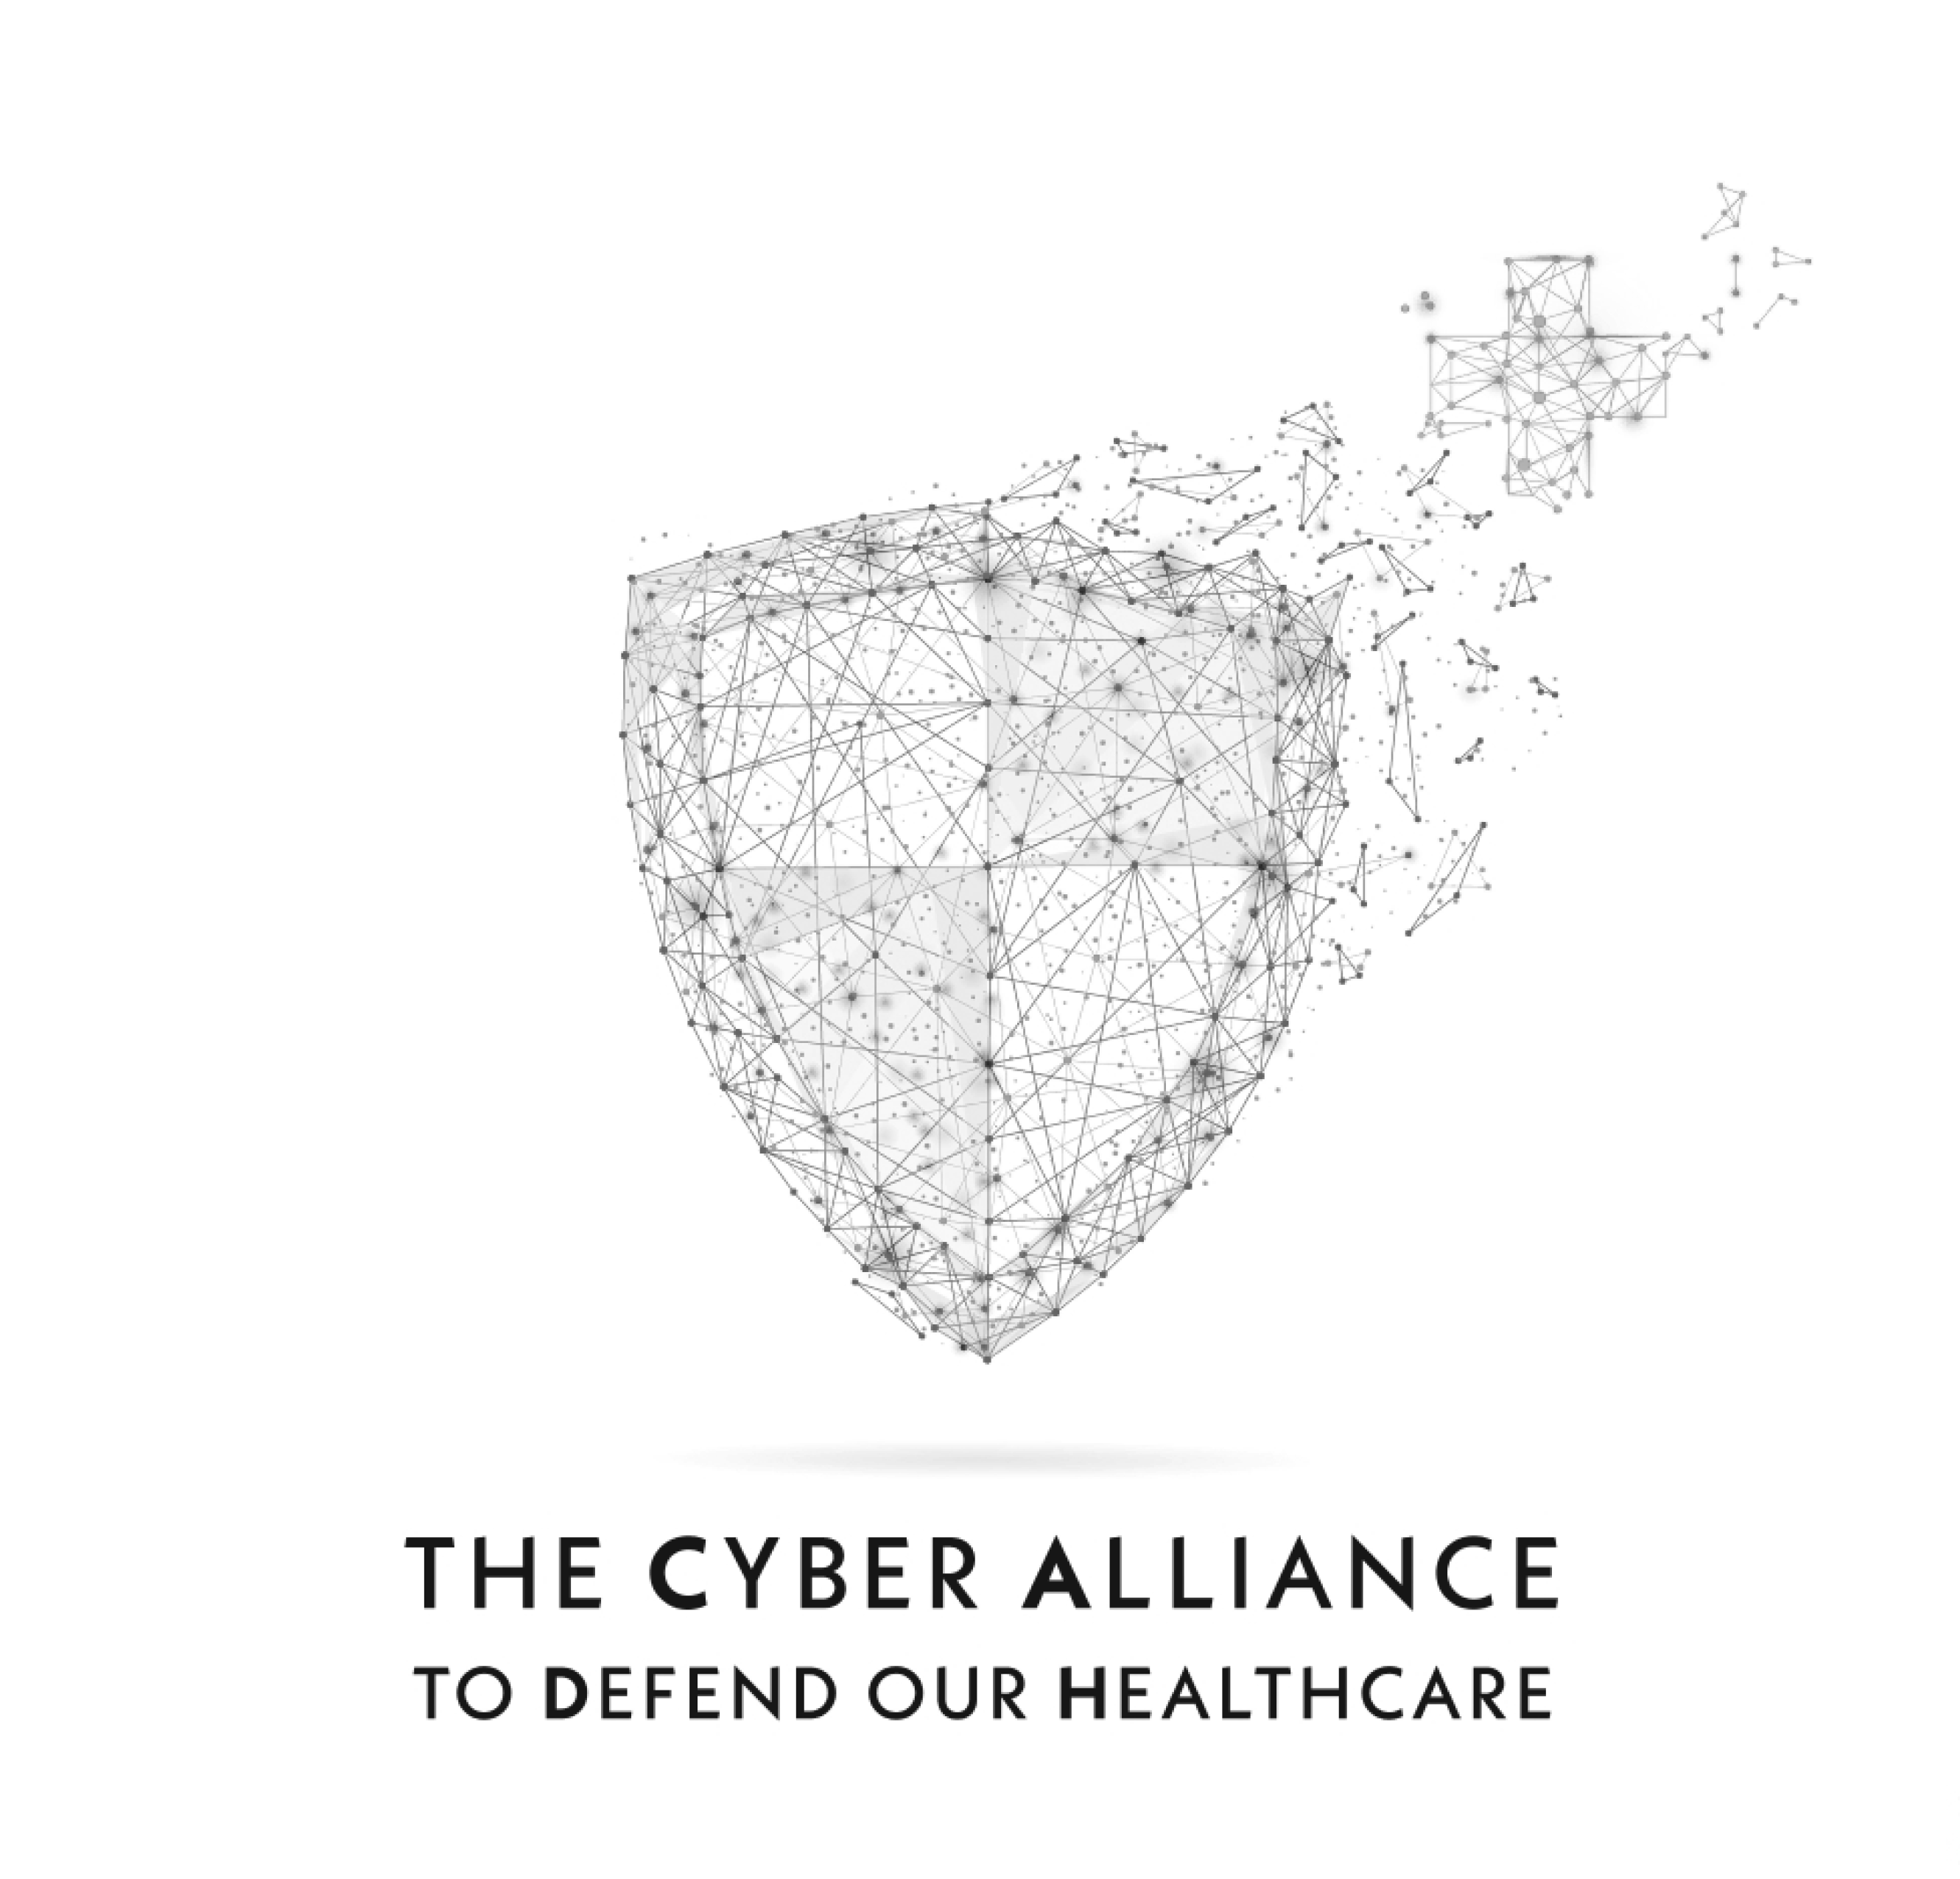 Cyber_alliance_onwhite-1